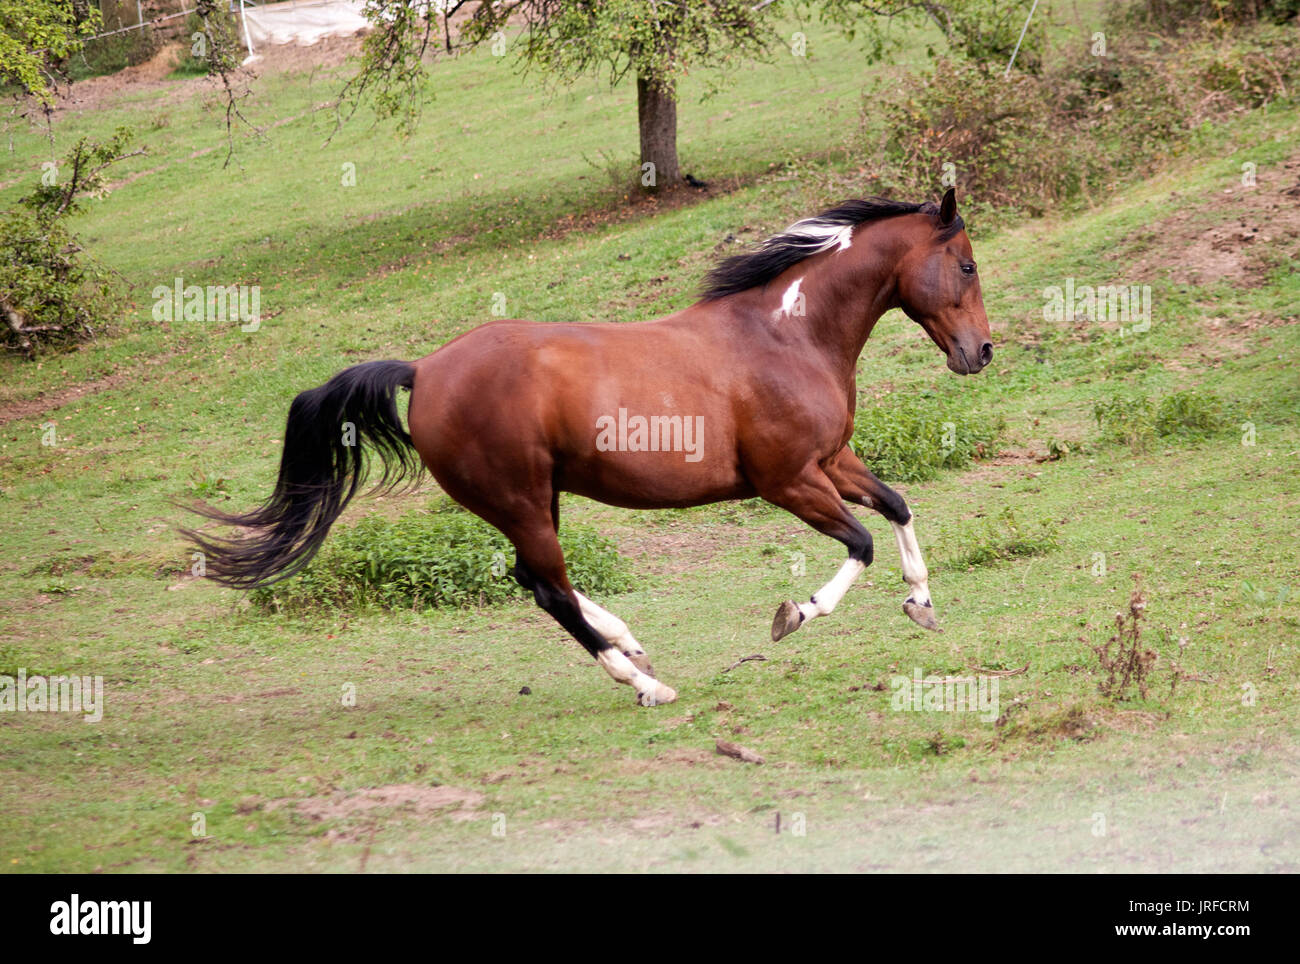 pied horse pinto colored galopp powerful free in meadow. Side view. Summer with bright colors - Stock Image